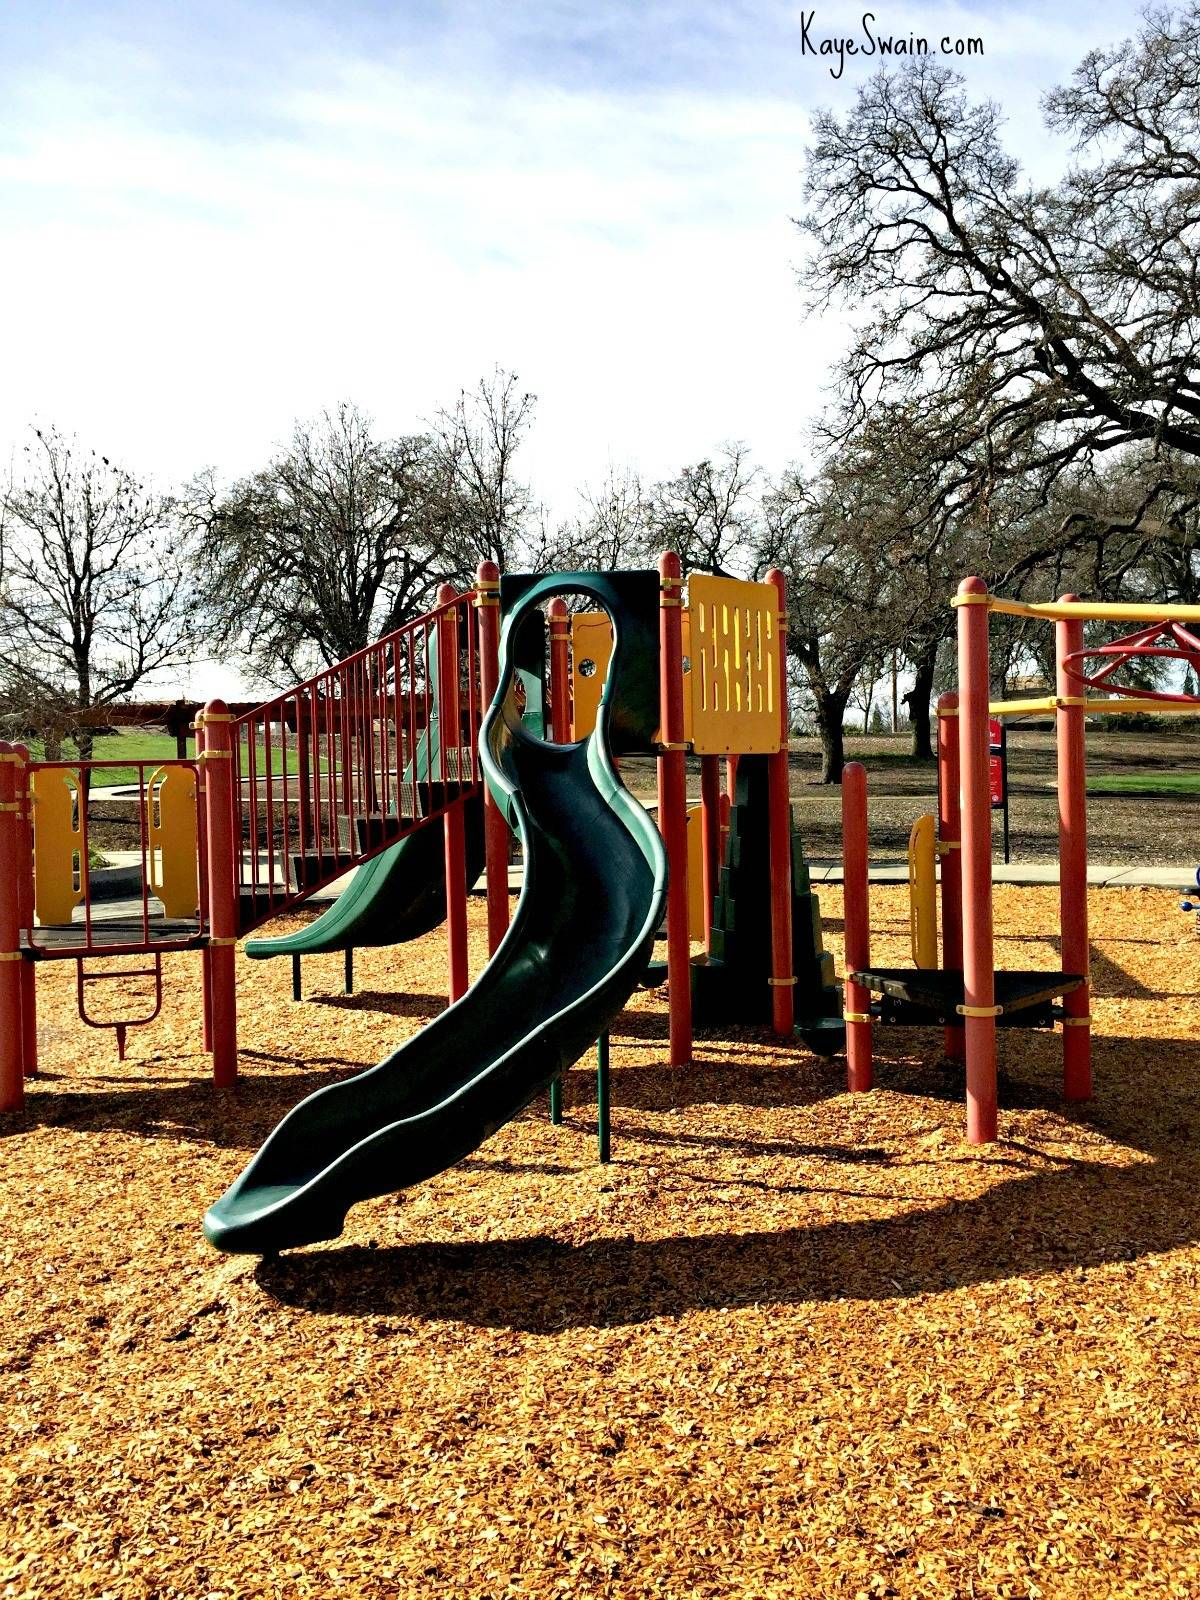 Hall Park in Roseville CA via Kaye Swain real estate agent blogger in Sacramento and Roseville